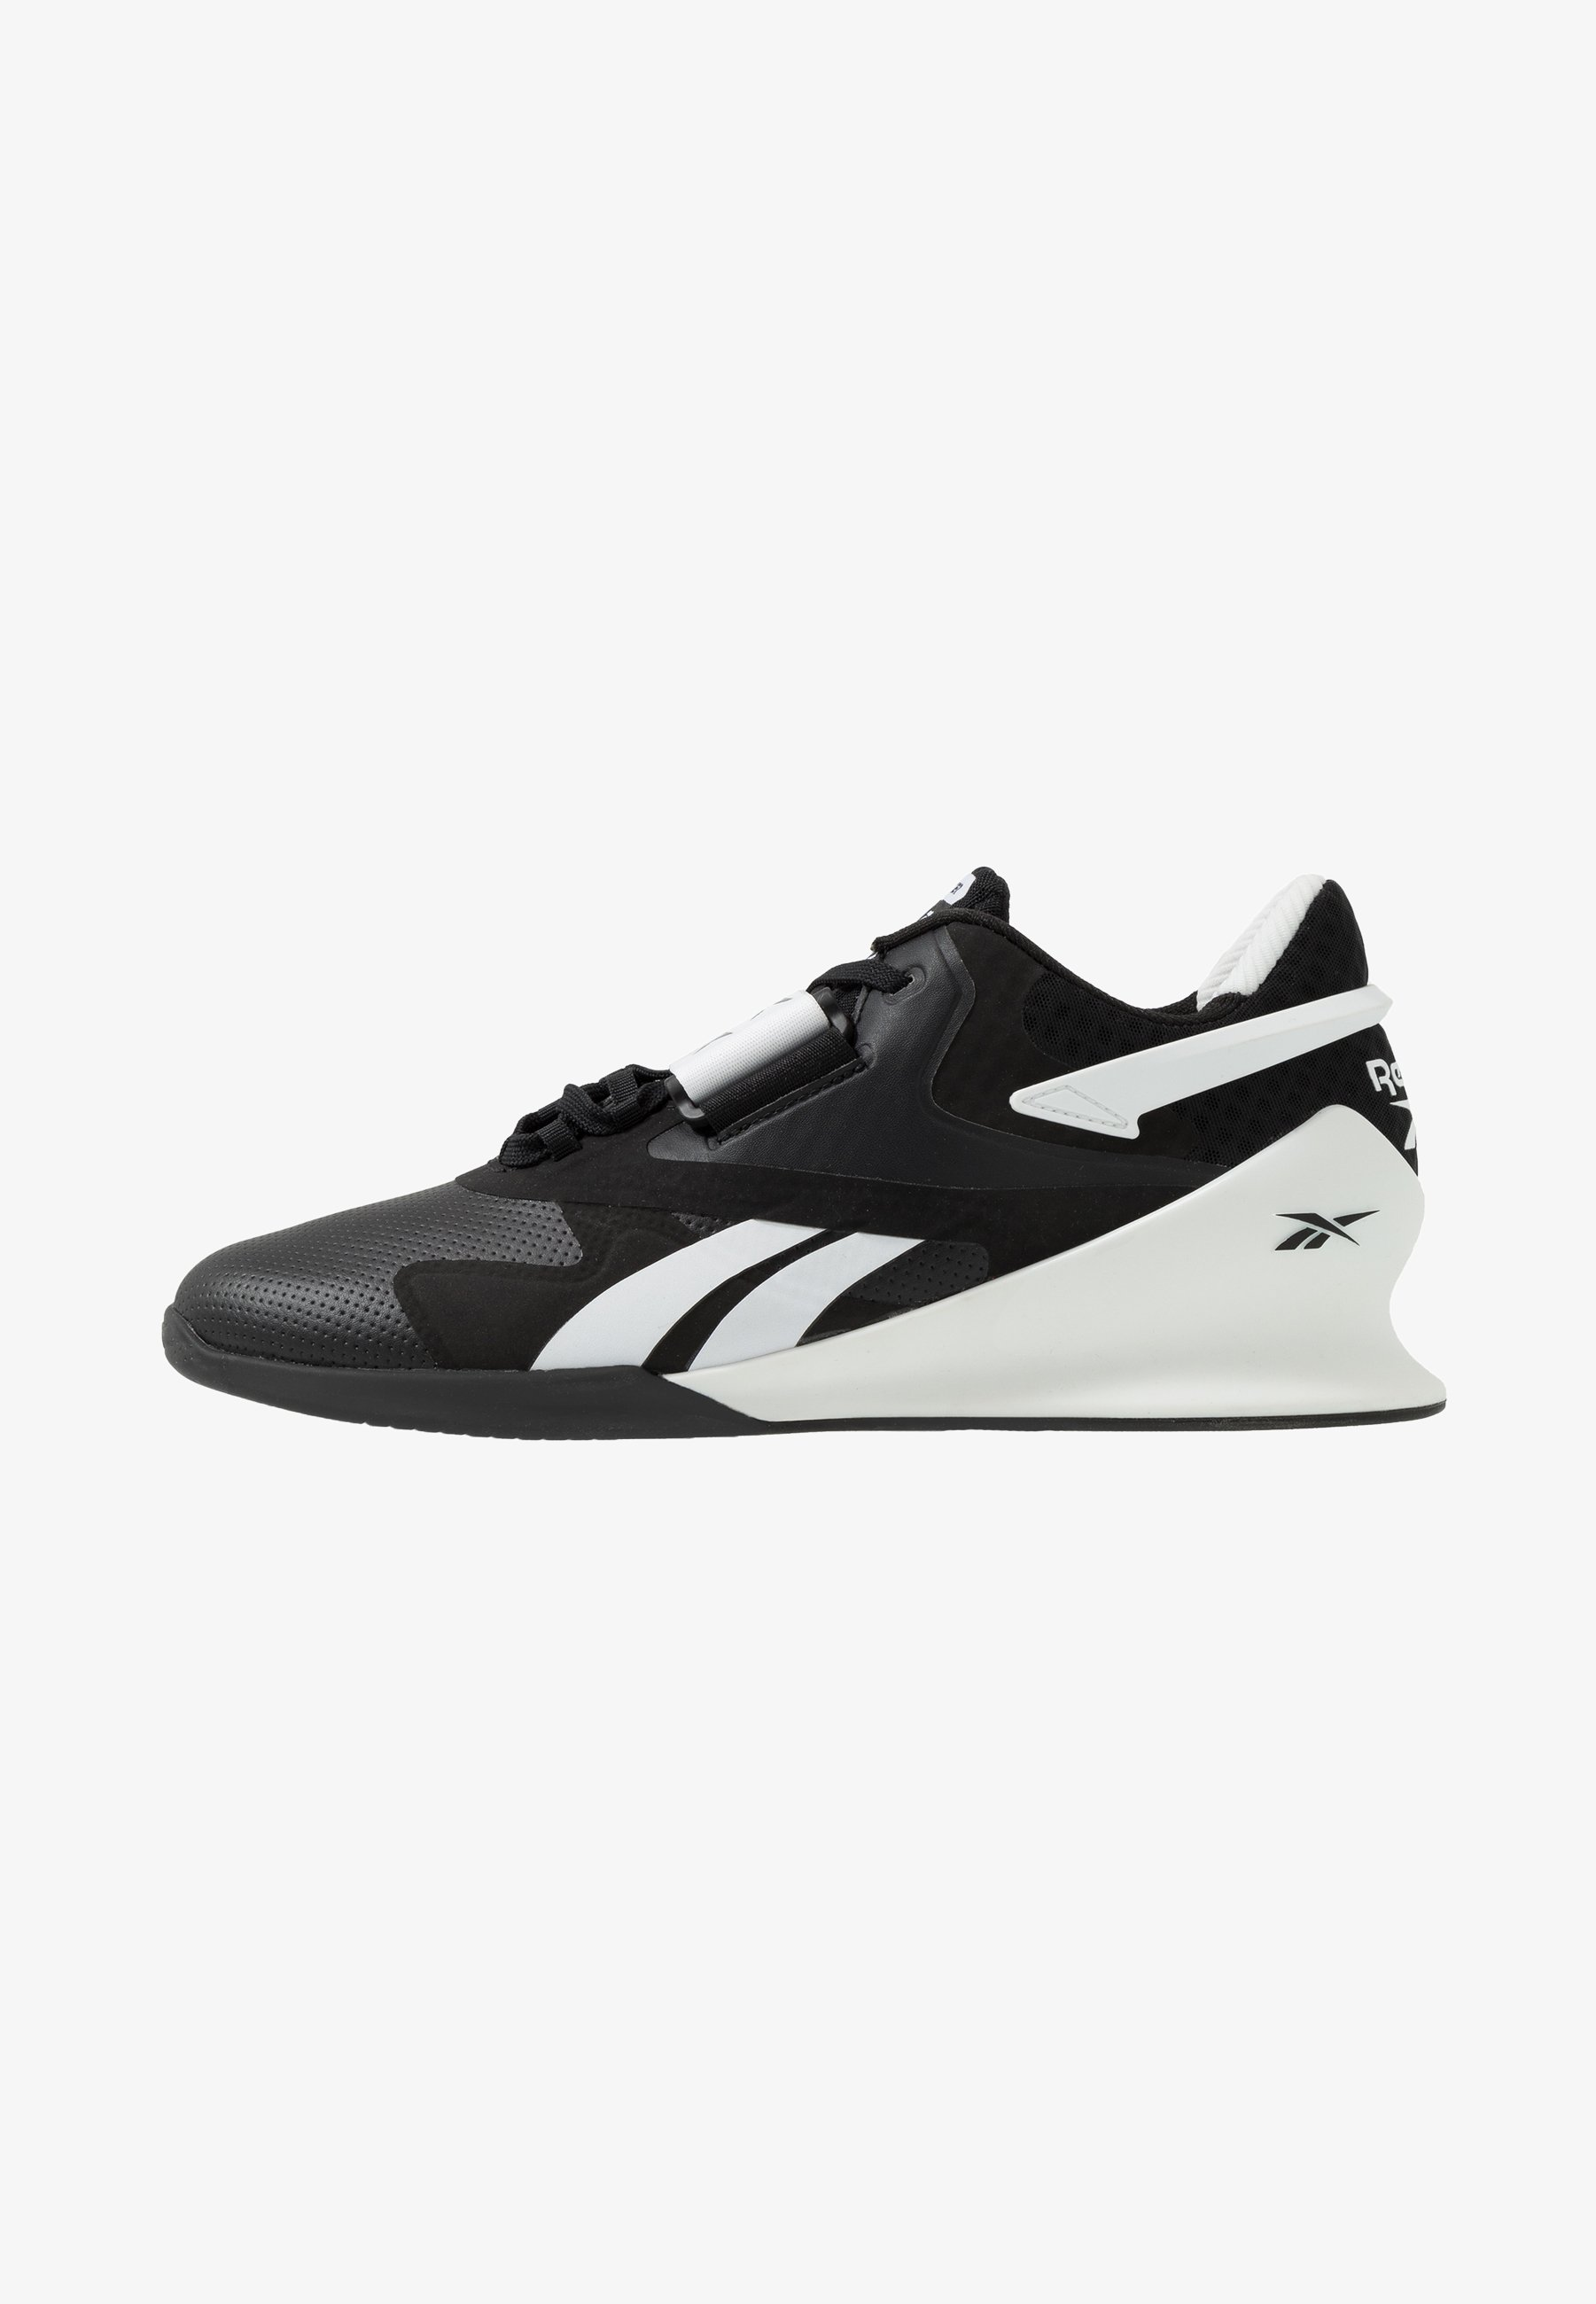 bordado Revocación Criticar  Reebok LEGACY LIFTER II - Sports shoes - black/white/black - Zalando.co.uk